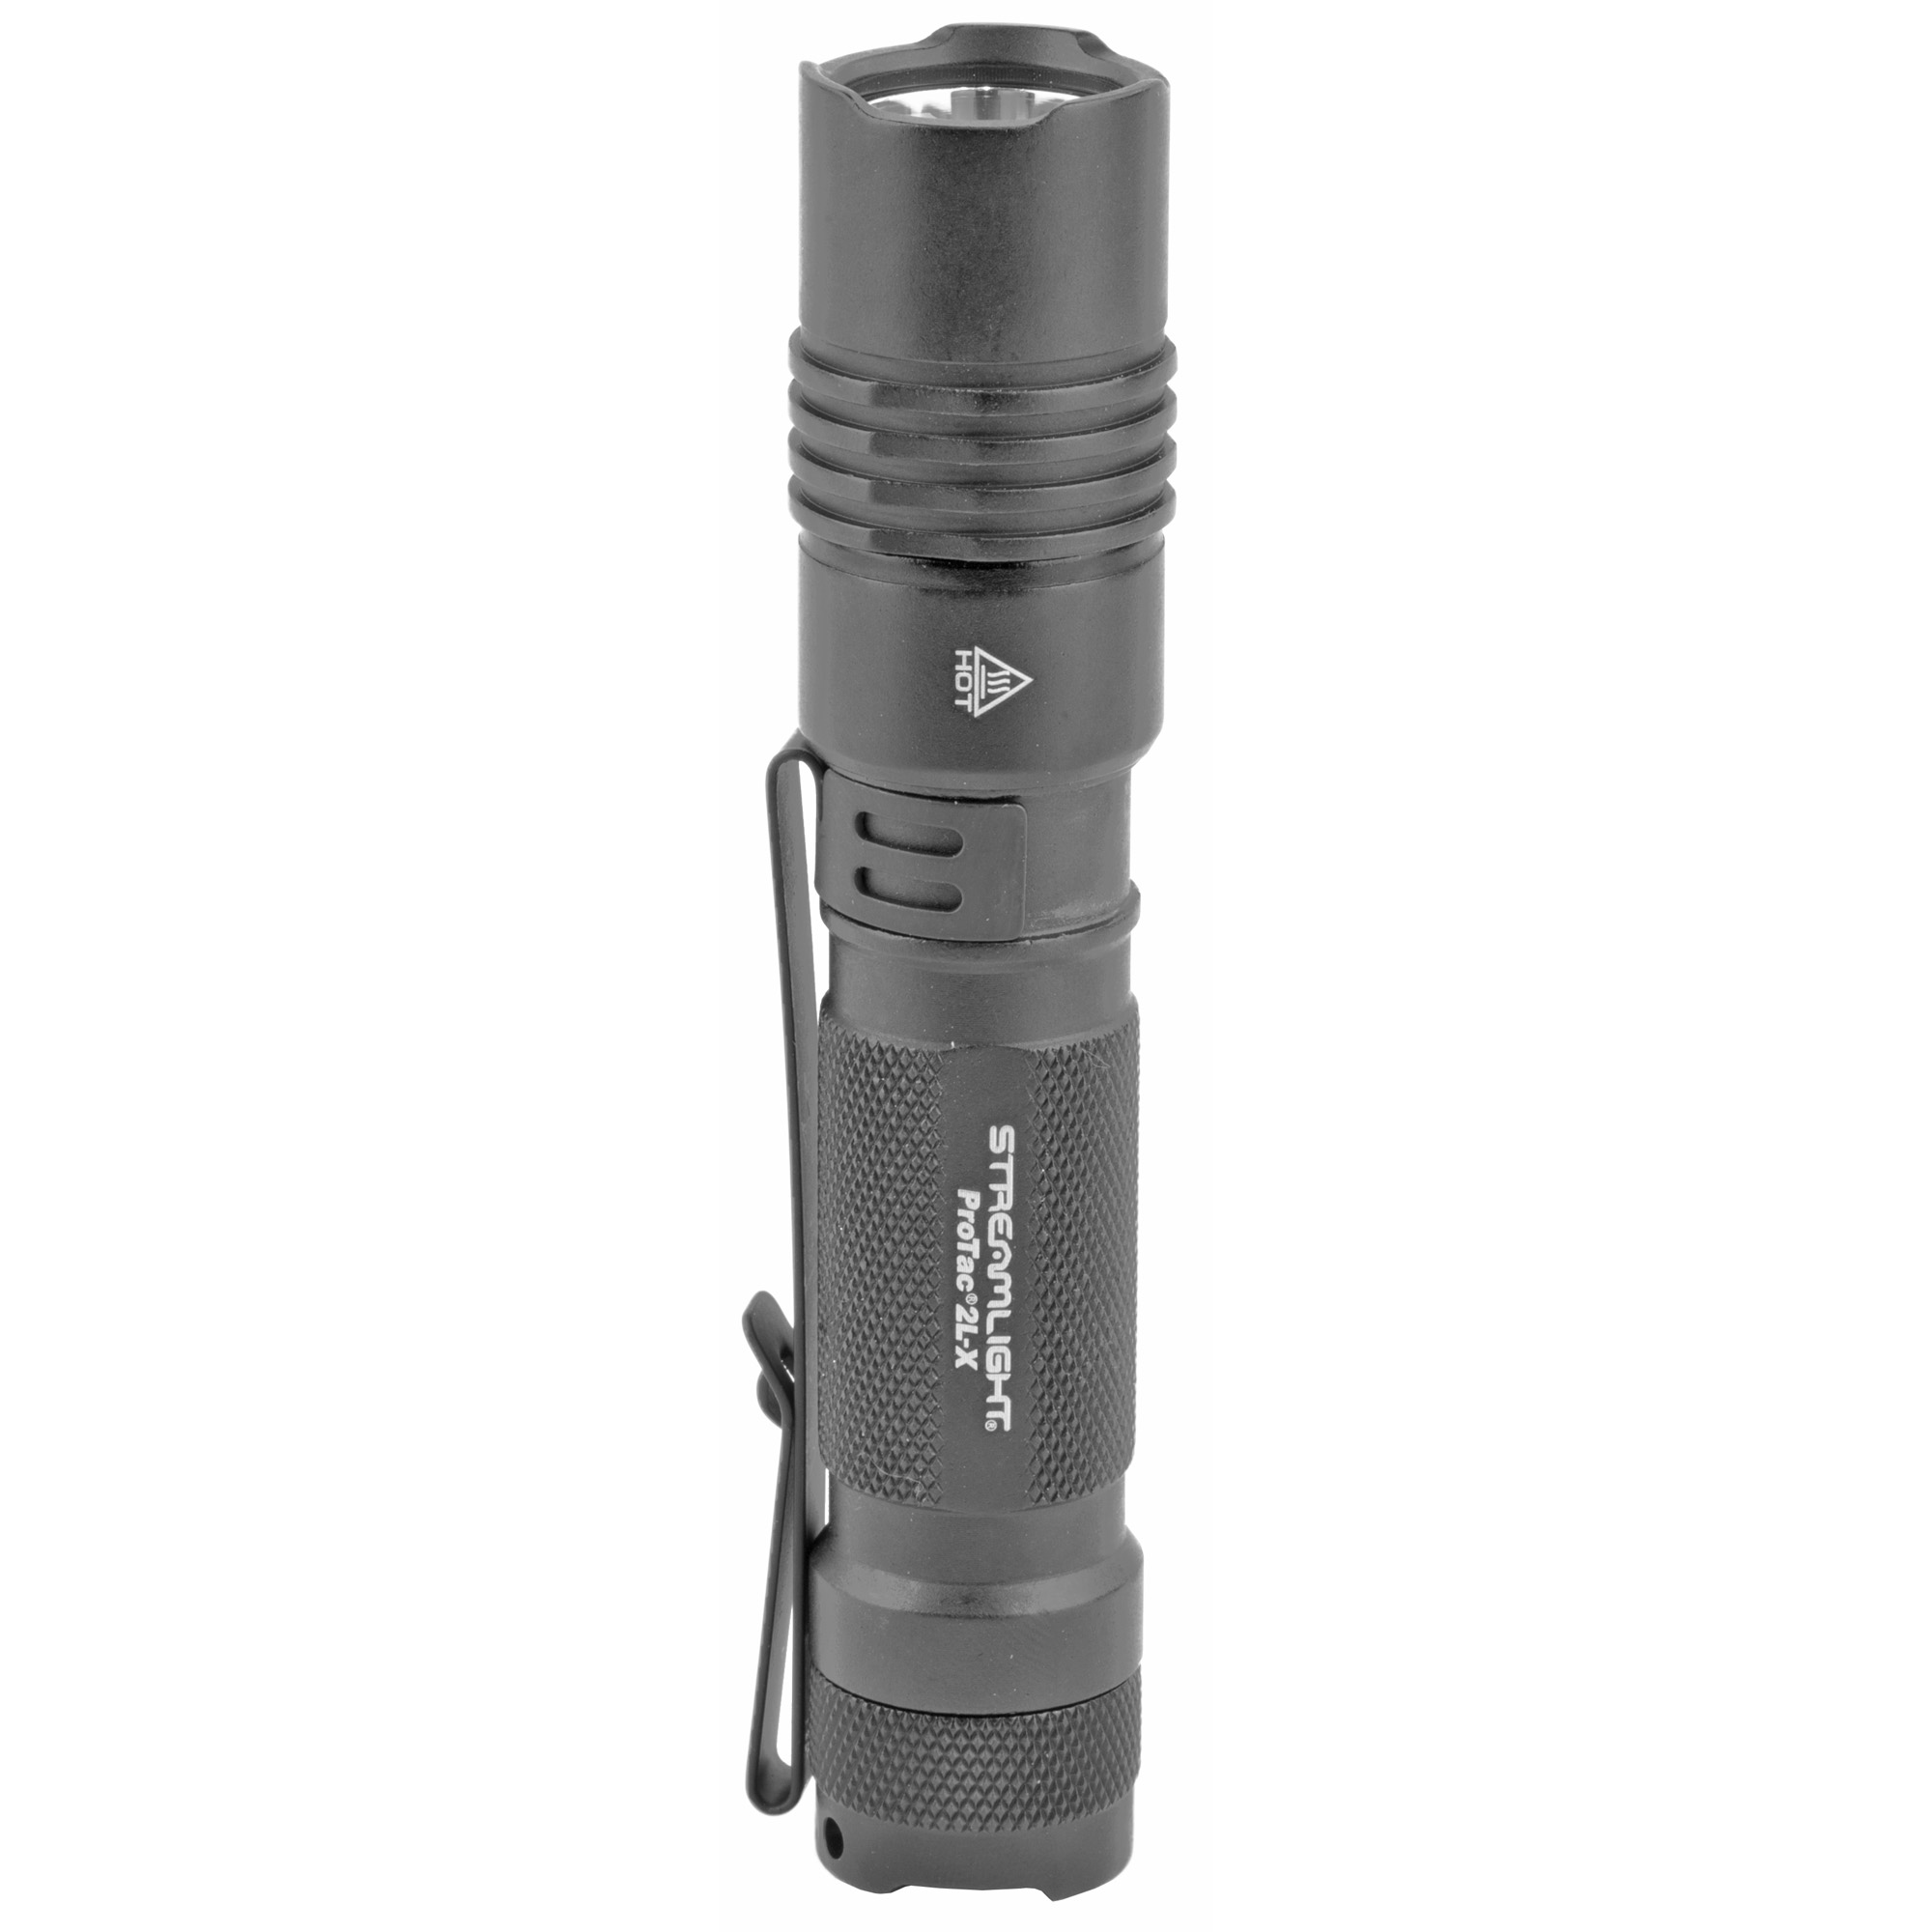 The 500 lumen ProTac 2L-X is an EDC light